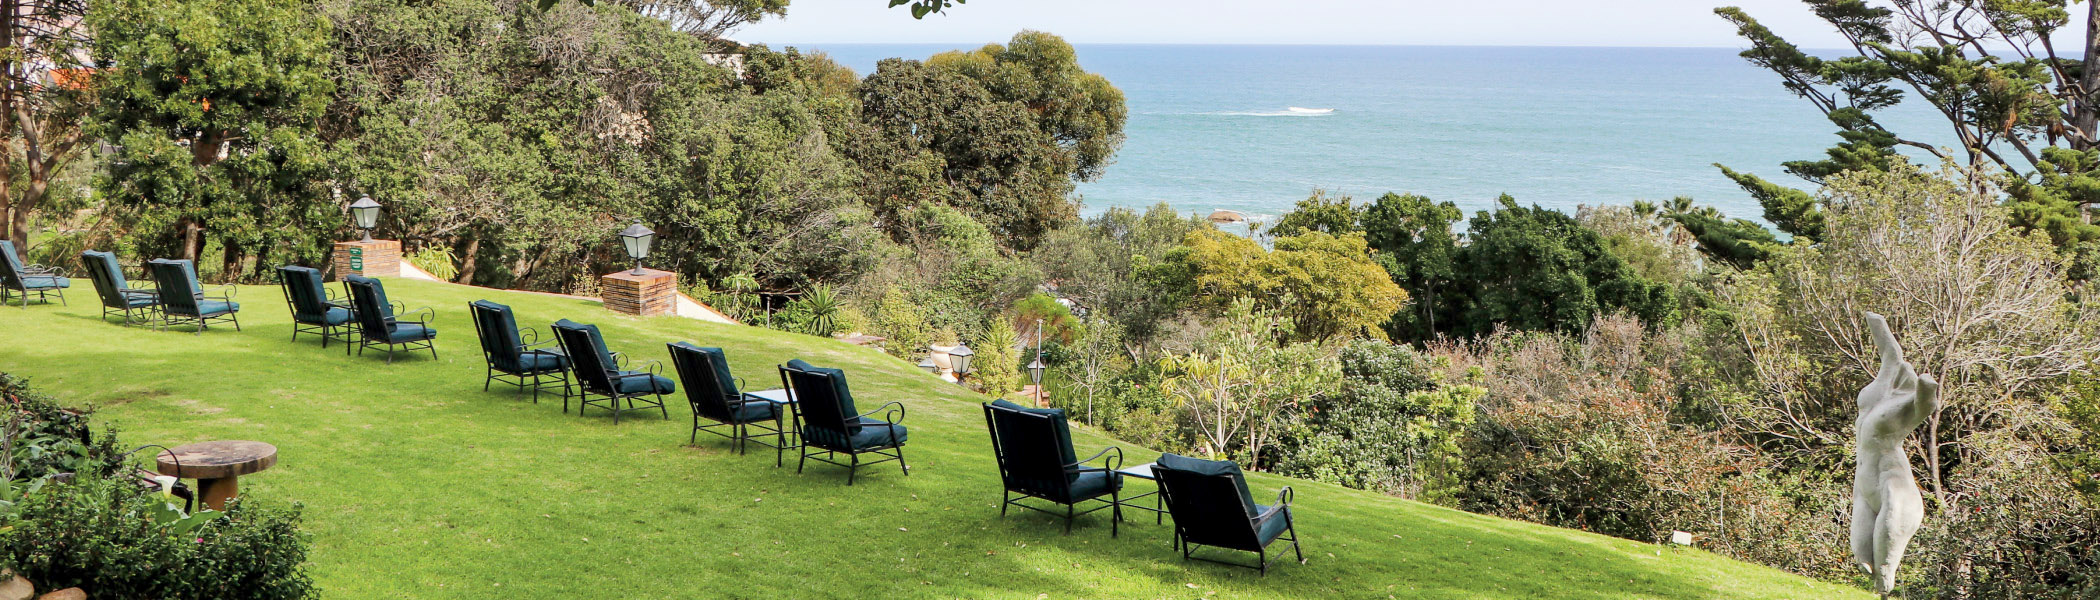 camps bay retreat lawn view